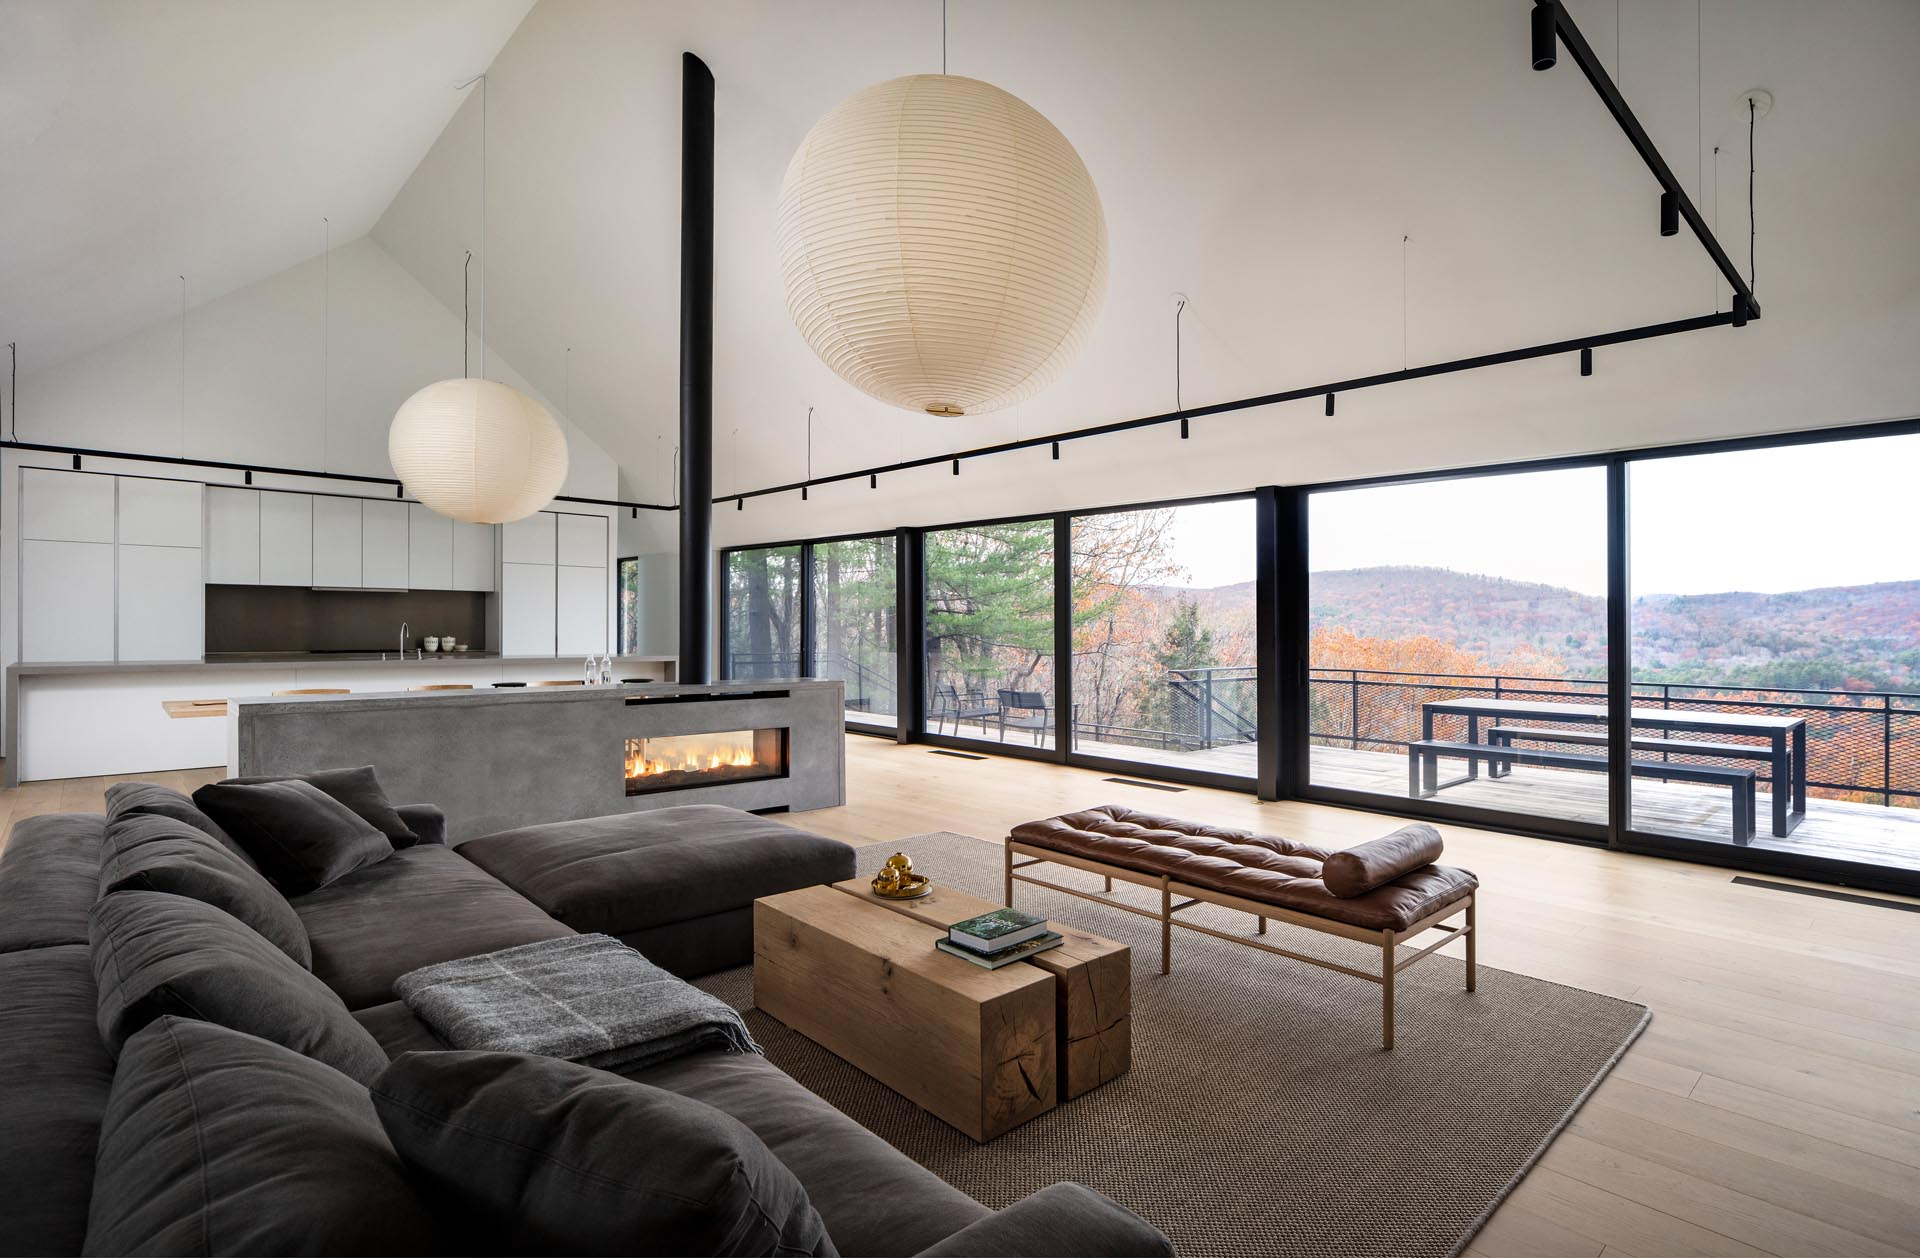 A modern house interior with a great room that includes the living room, a concrete fireplace, the dining room, and a white kitchen.